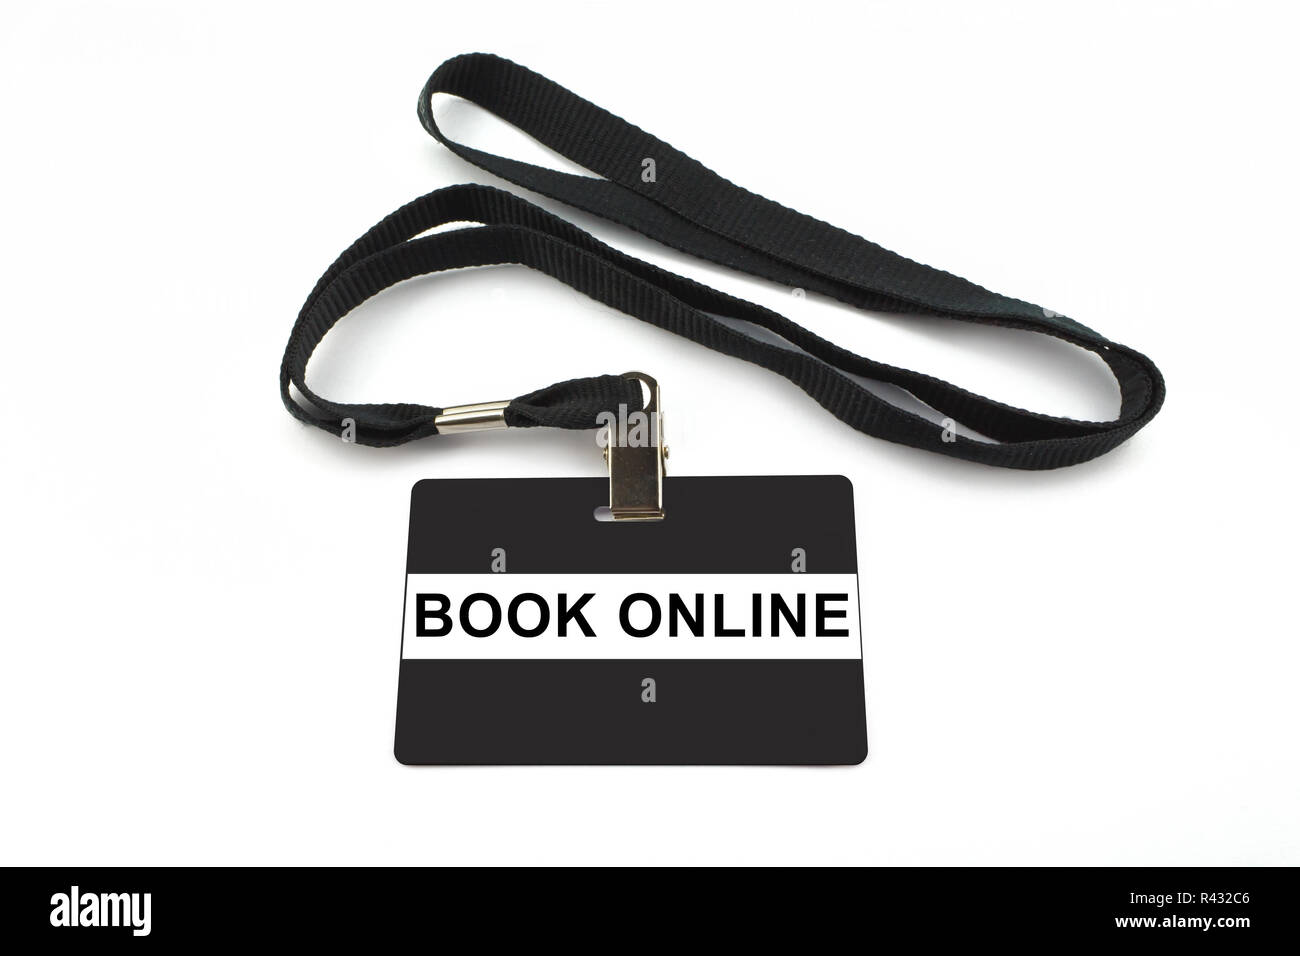 book online badge isolated on white background - Stock Image